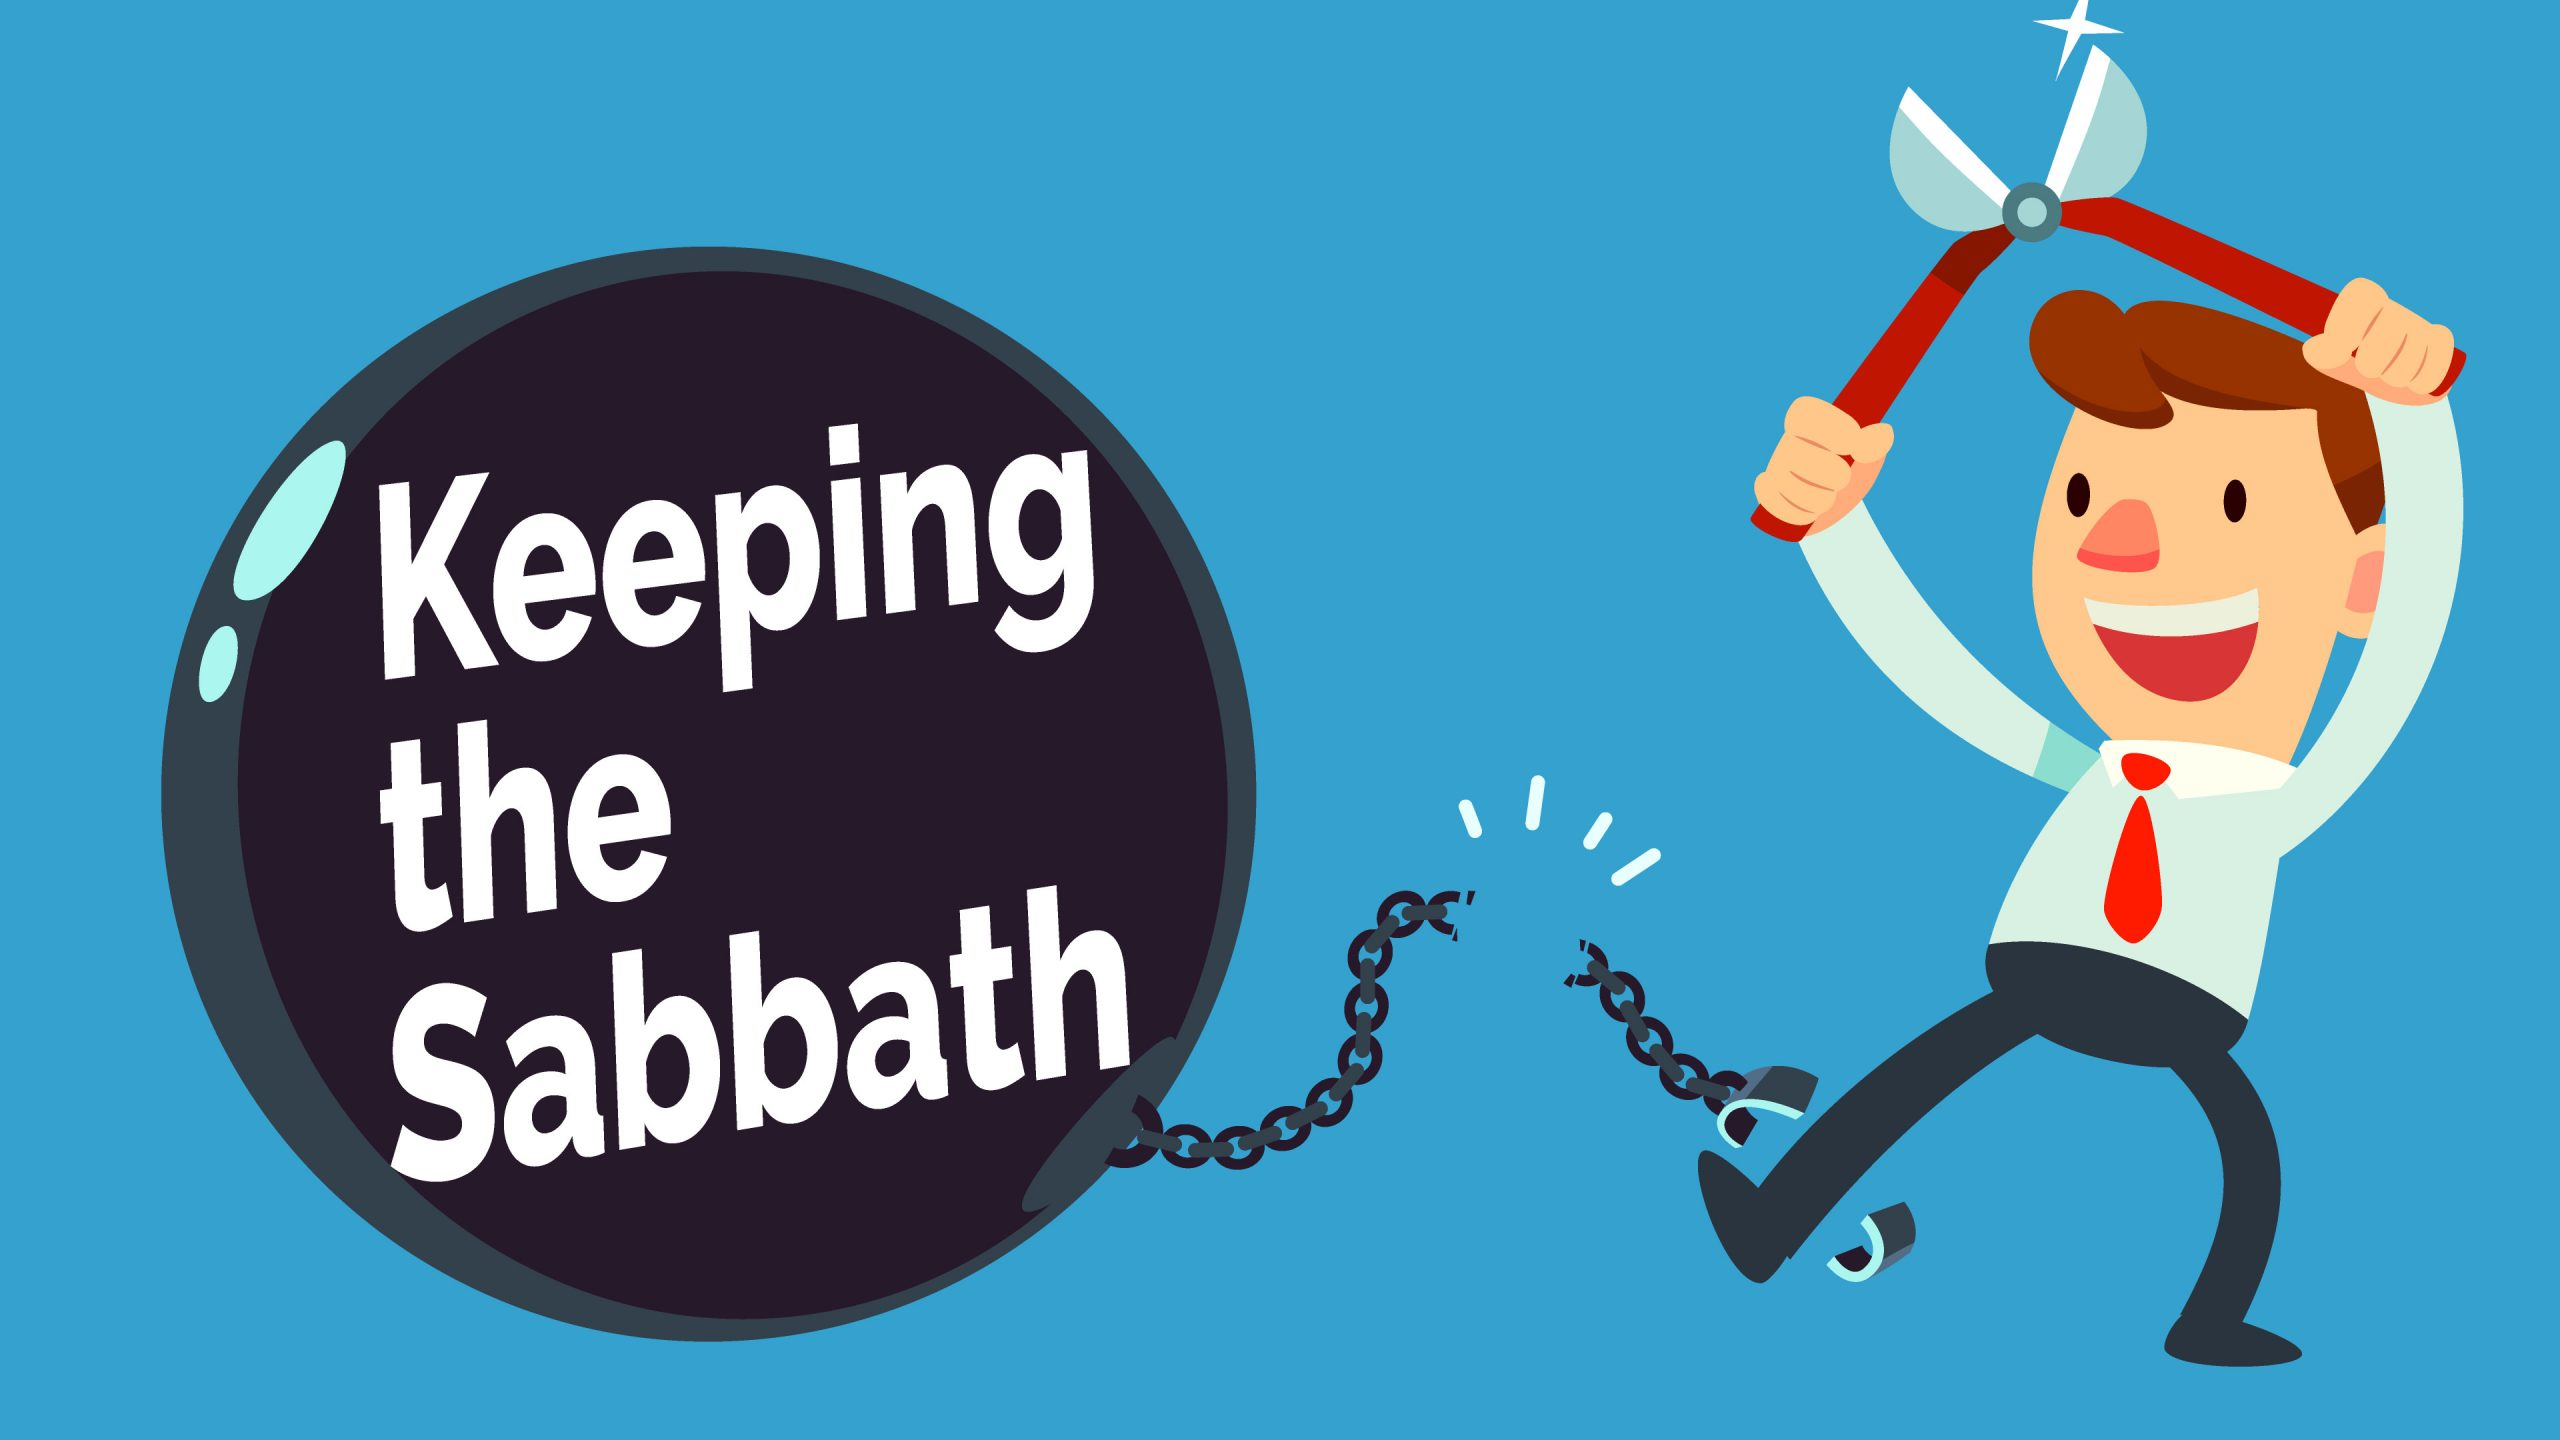 Keeping the Sabbath or Not